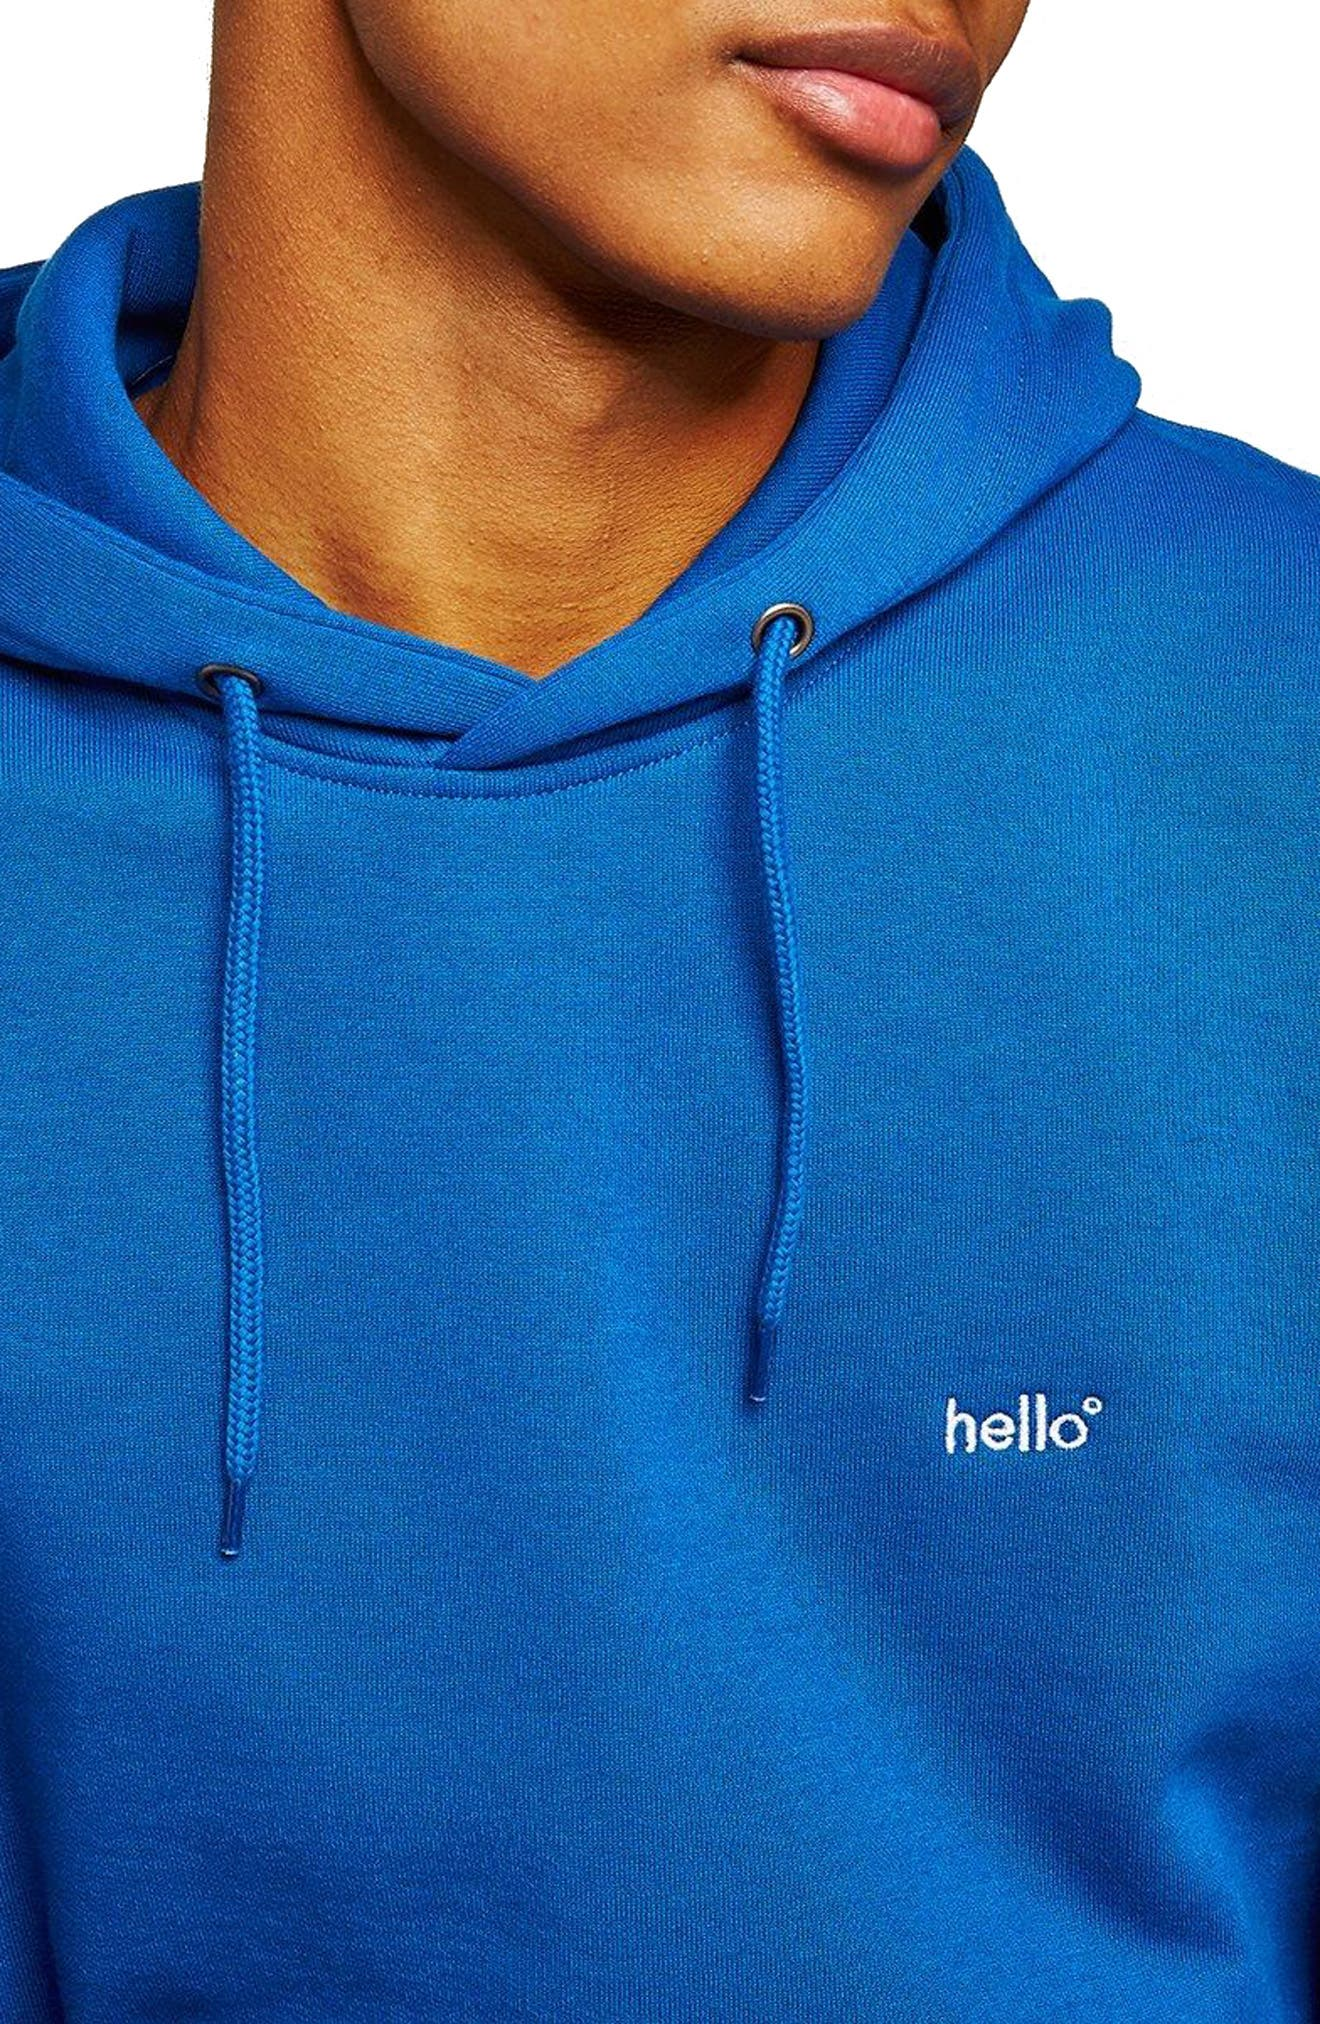 Classic Fit Tristan Hello Embroidered Hoodie,                             Alternate thumbnail 3, color,                             Blue Multi